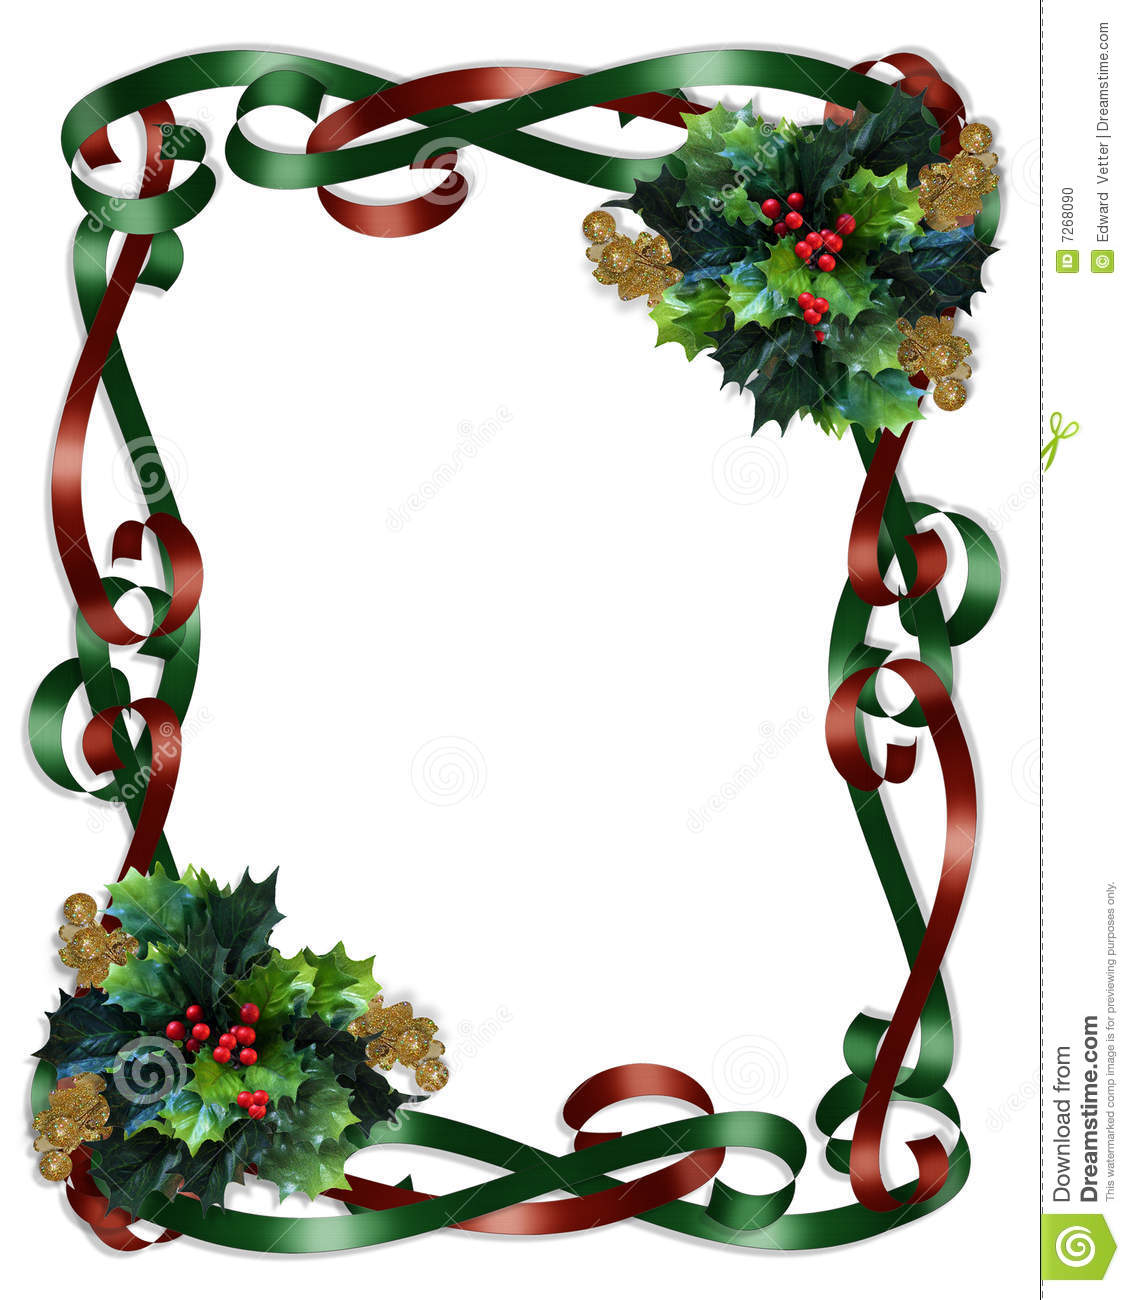 Christmas Ornament Border Clipart   Clipart Panda   Free Clipart